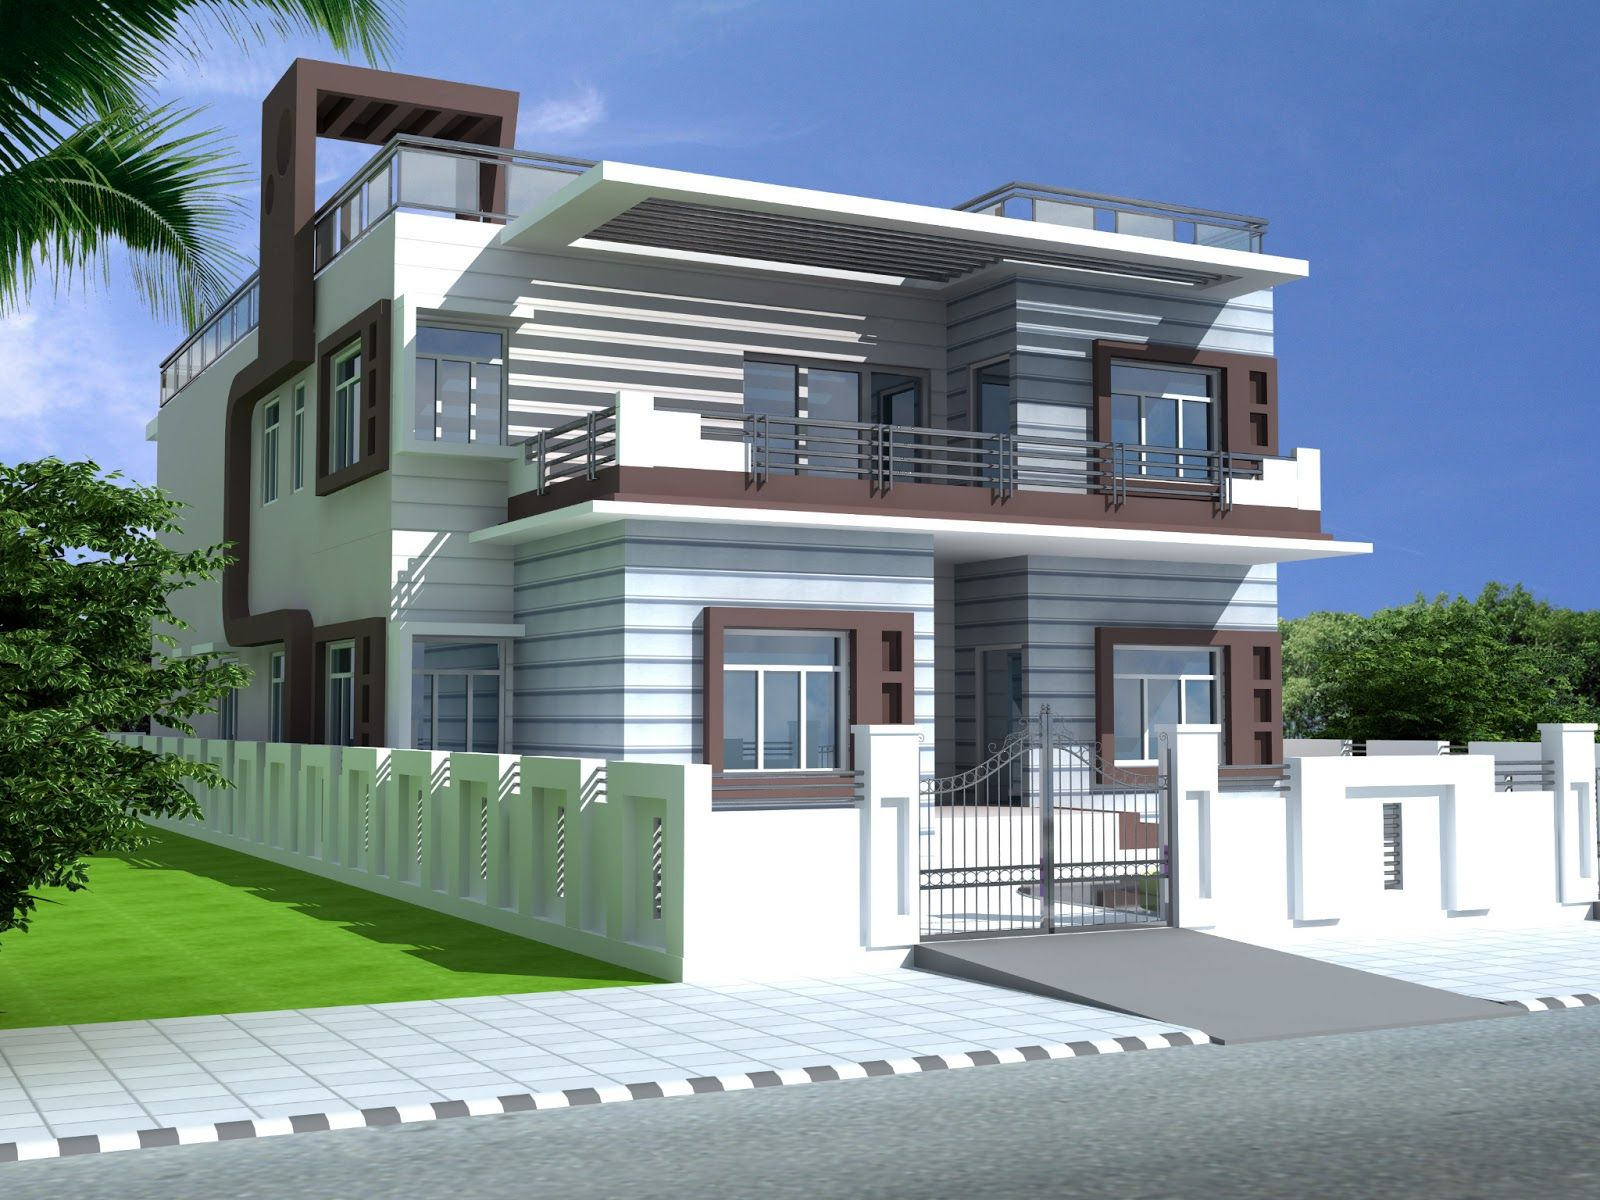 6 bedrooms duplex house design in 390m2 13m x 30m for House front design